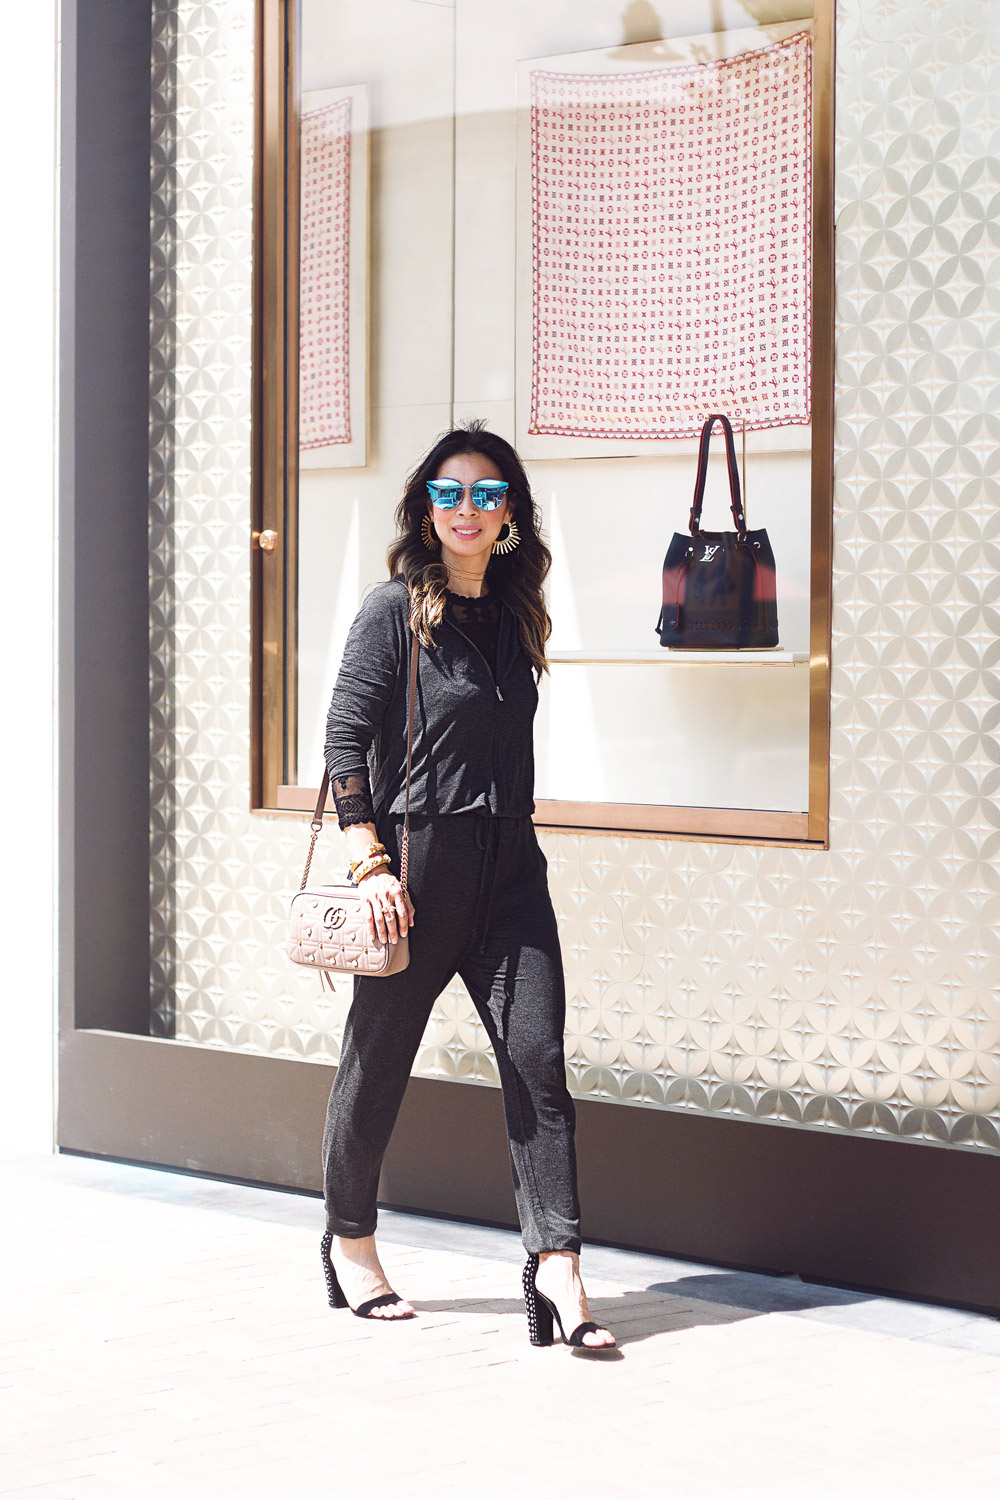 cabi hooded playsuit black lace top homini apollo earrings gucci pearl marmont camera bag julie vos bracelets